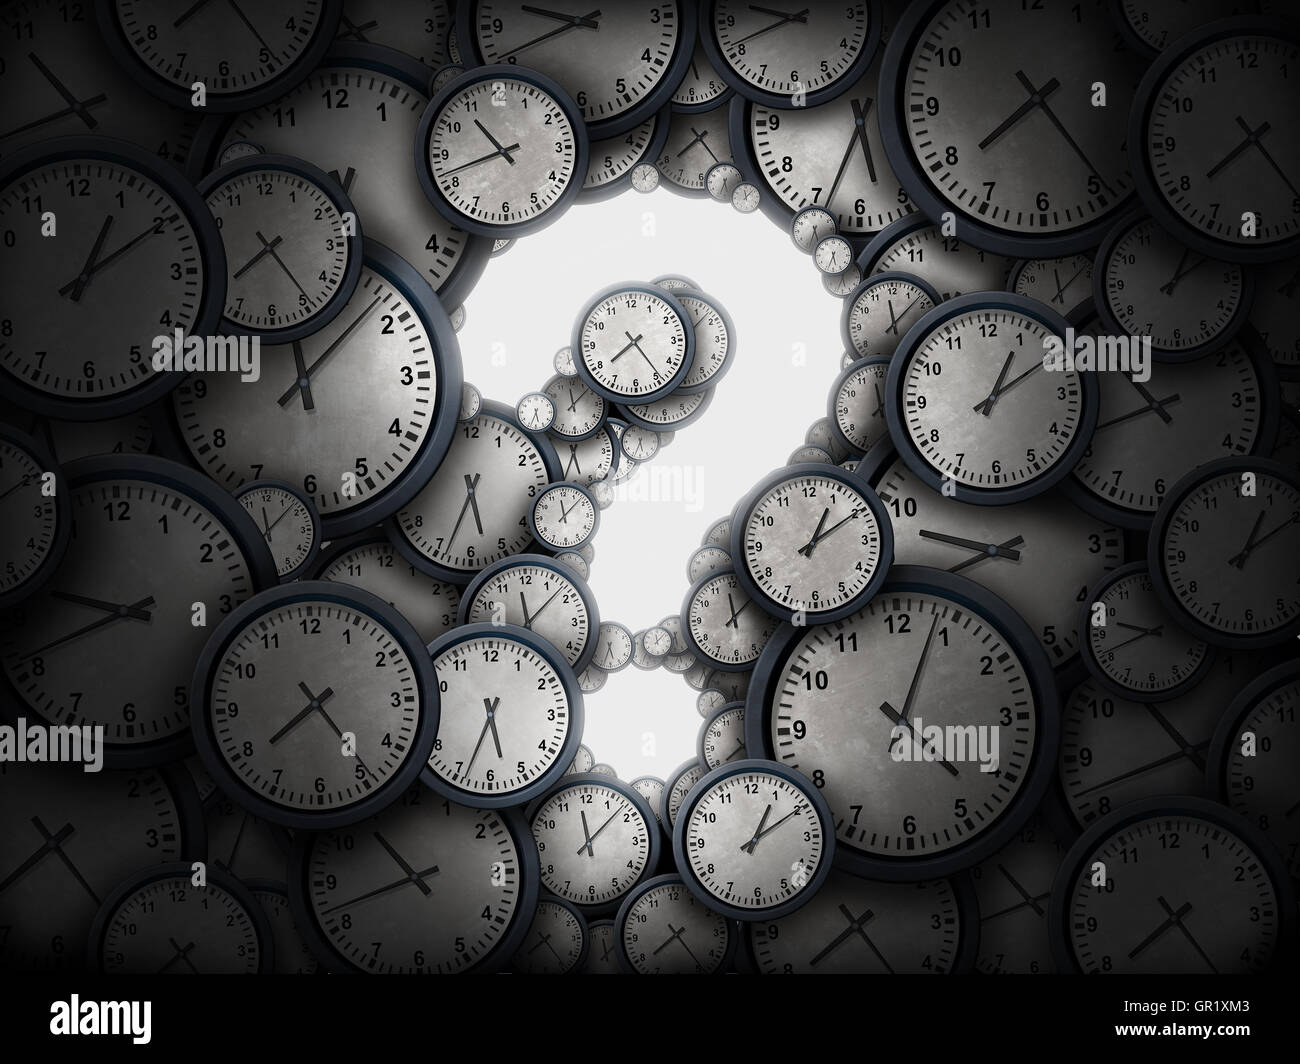 Concept of time question or business schedule questions symbol as a group of clocks shaped as a glowing icon for - Stock Image